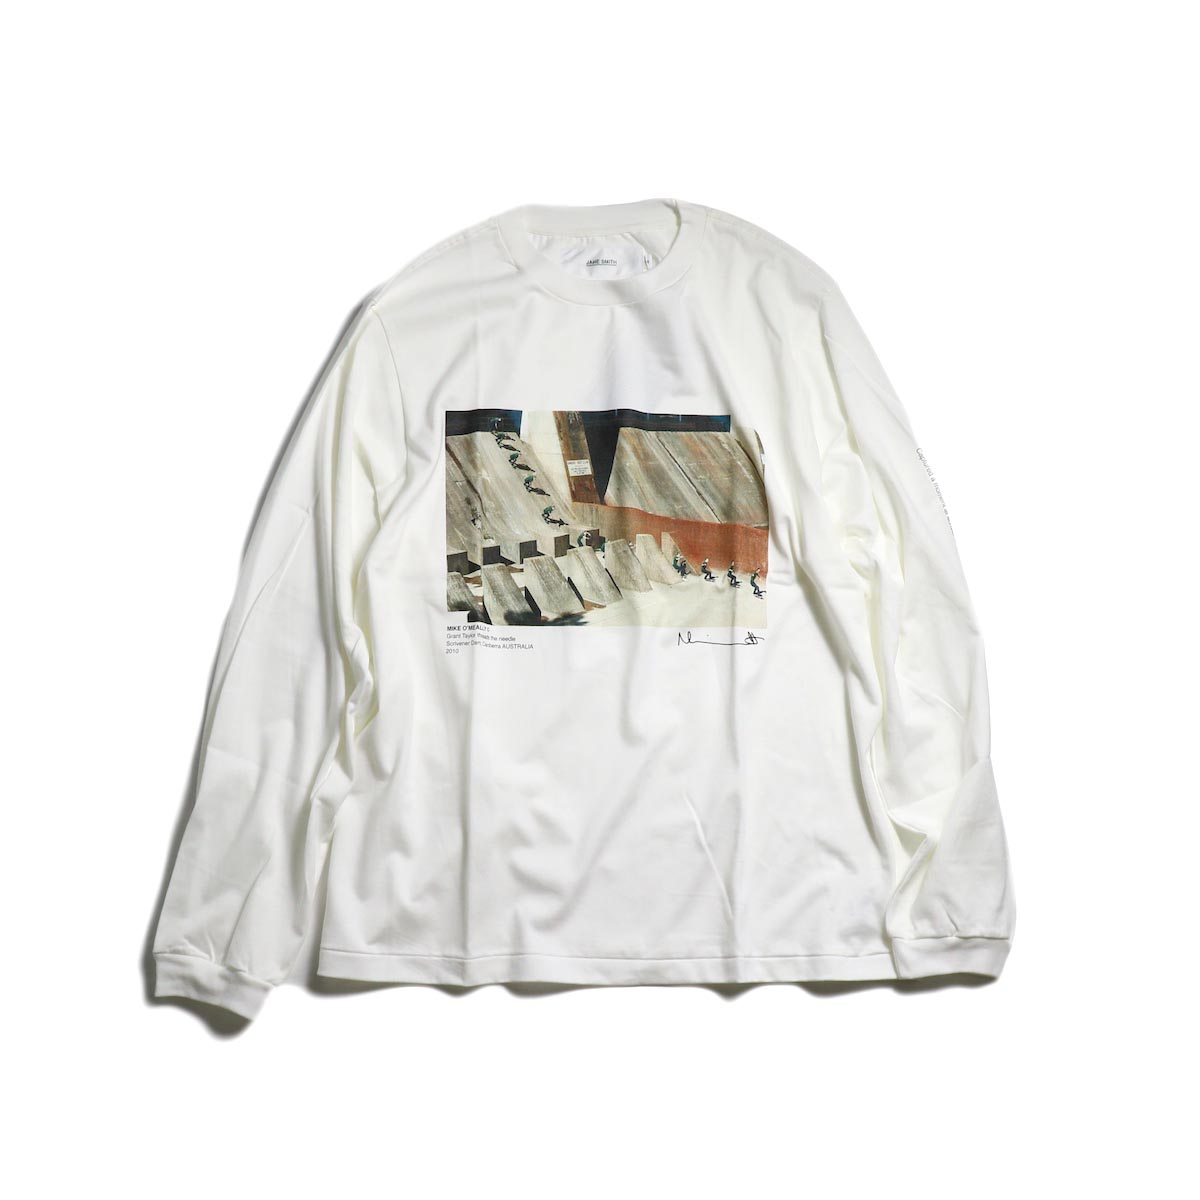 JANE SMITH / MIKE O'MEALLY THREAD THE NEEDLE L/S -White